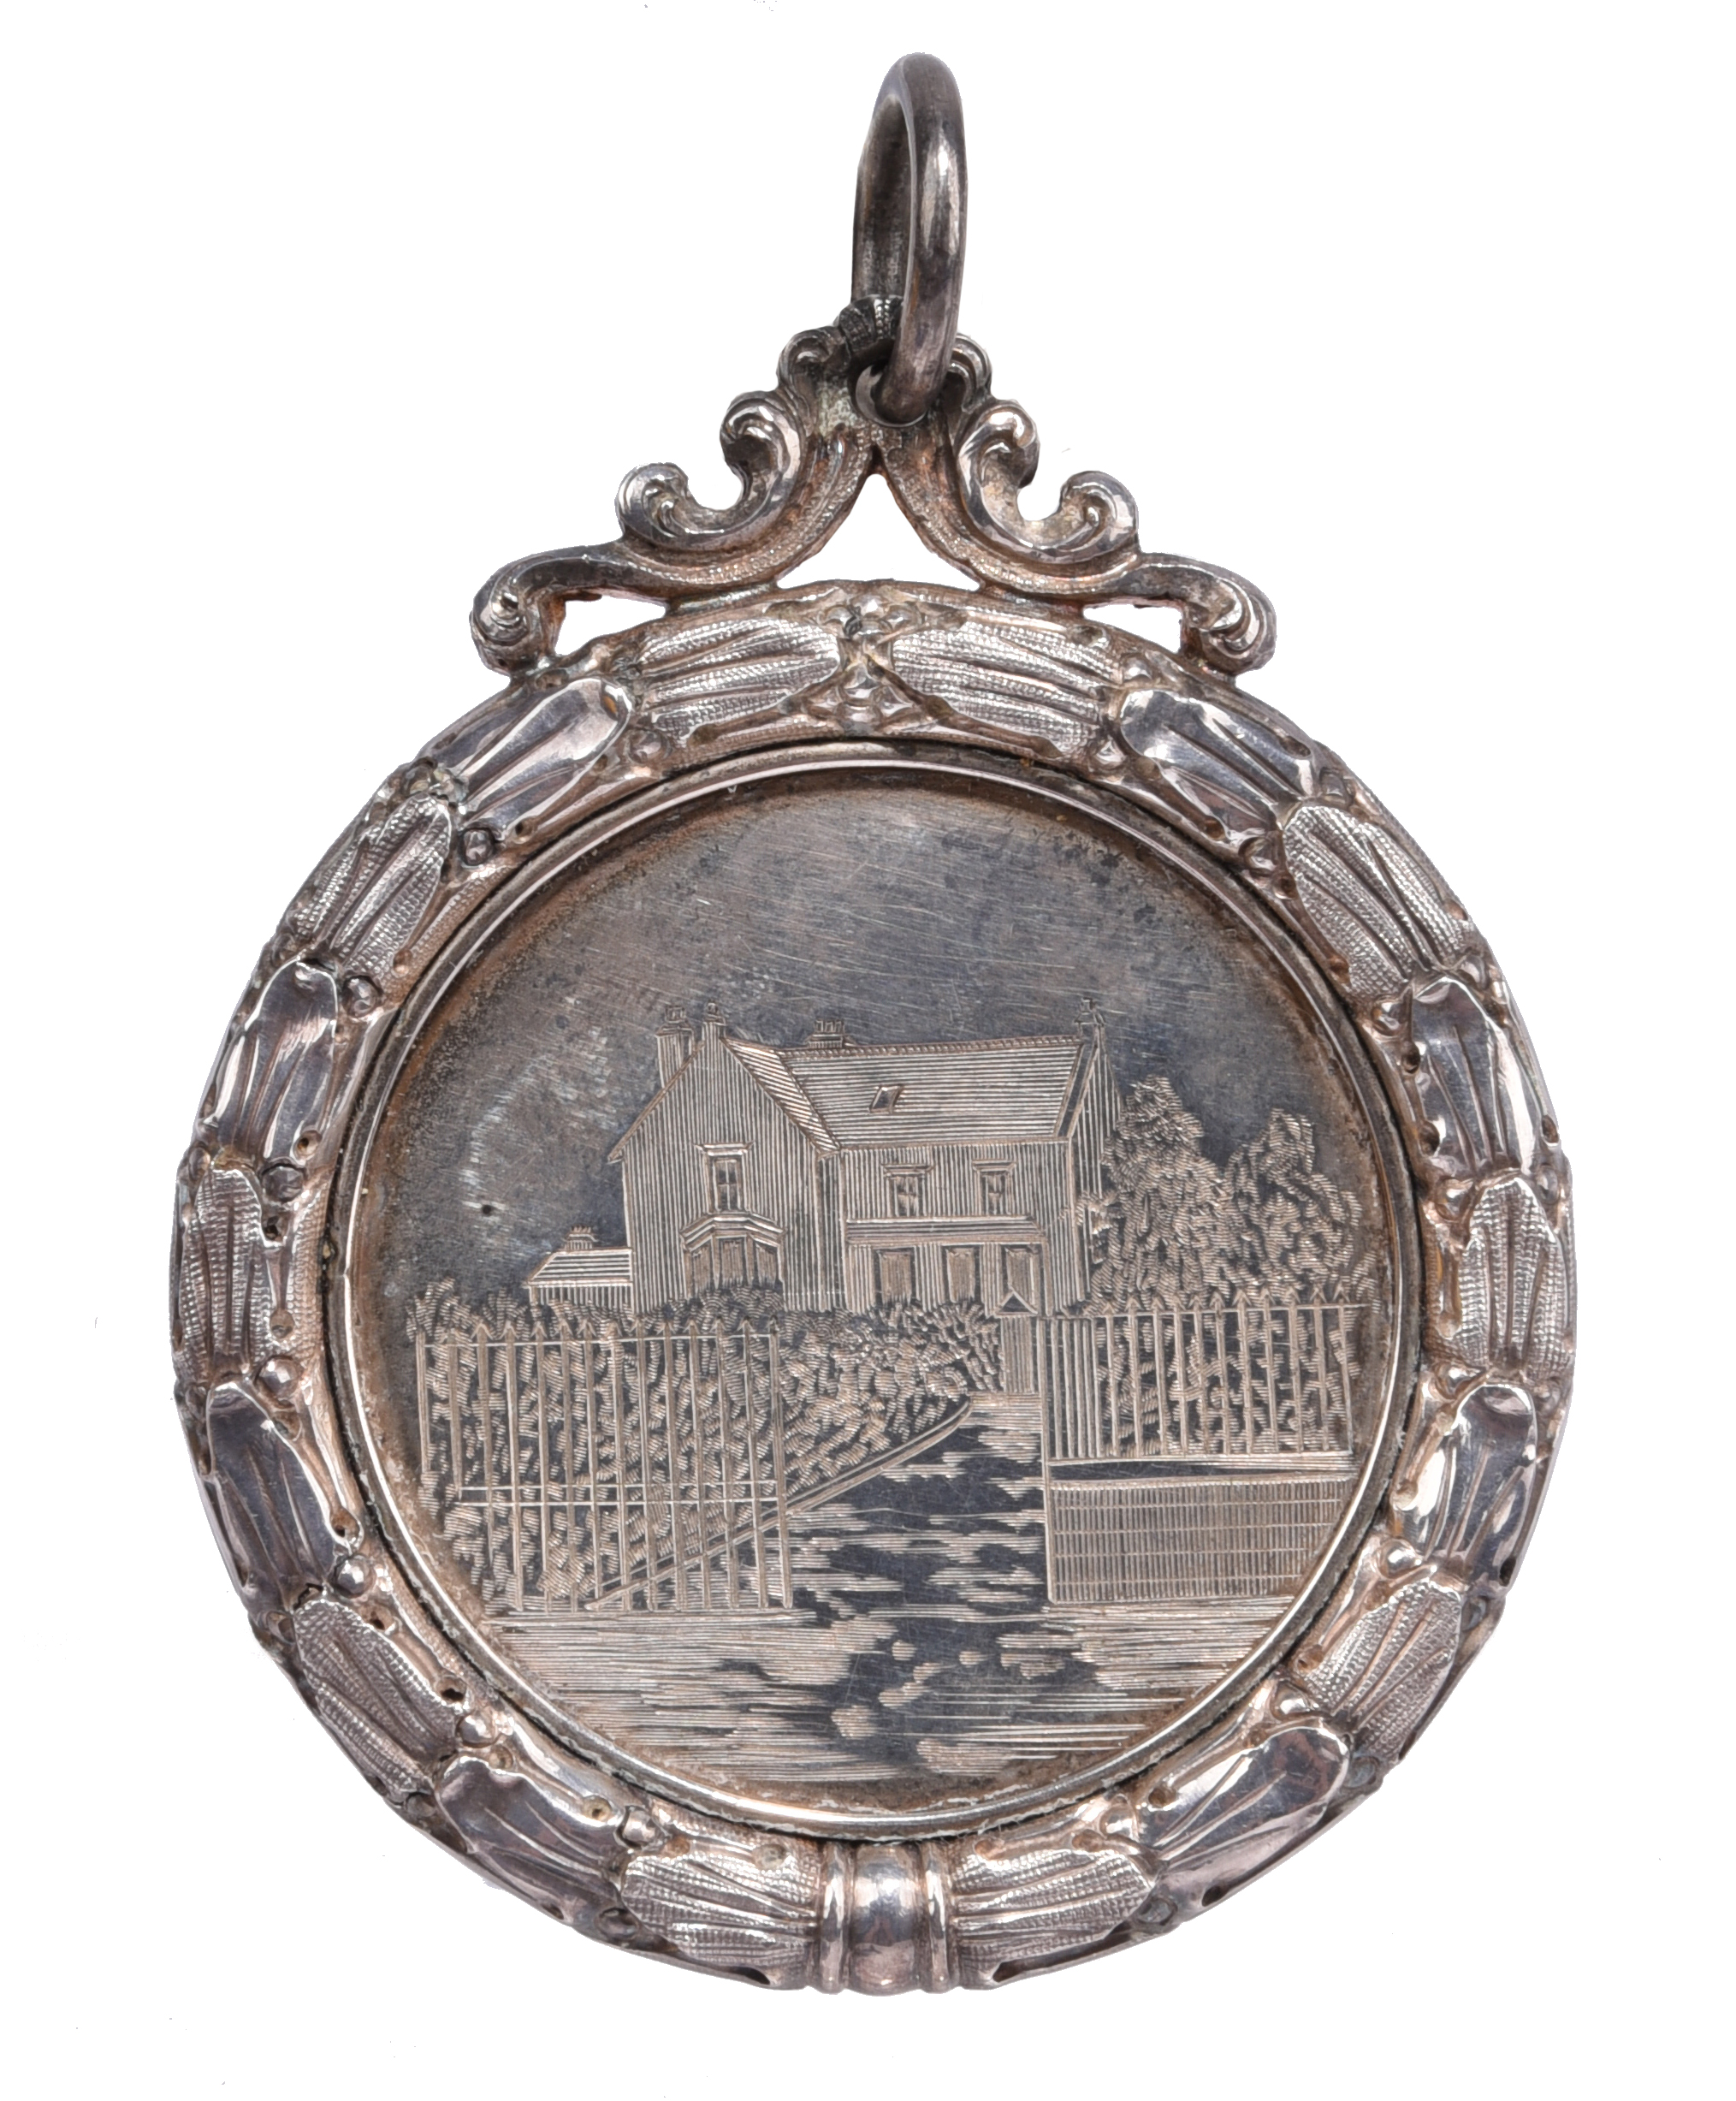 Scotland: Brechin High School 1888-9: an engraved silver prize medal, 58mm, view of the school, rev.